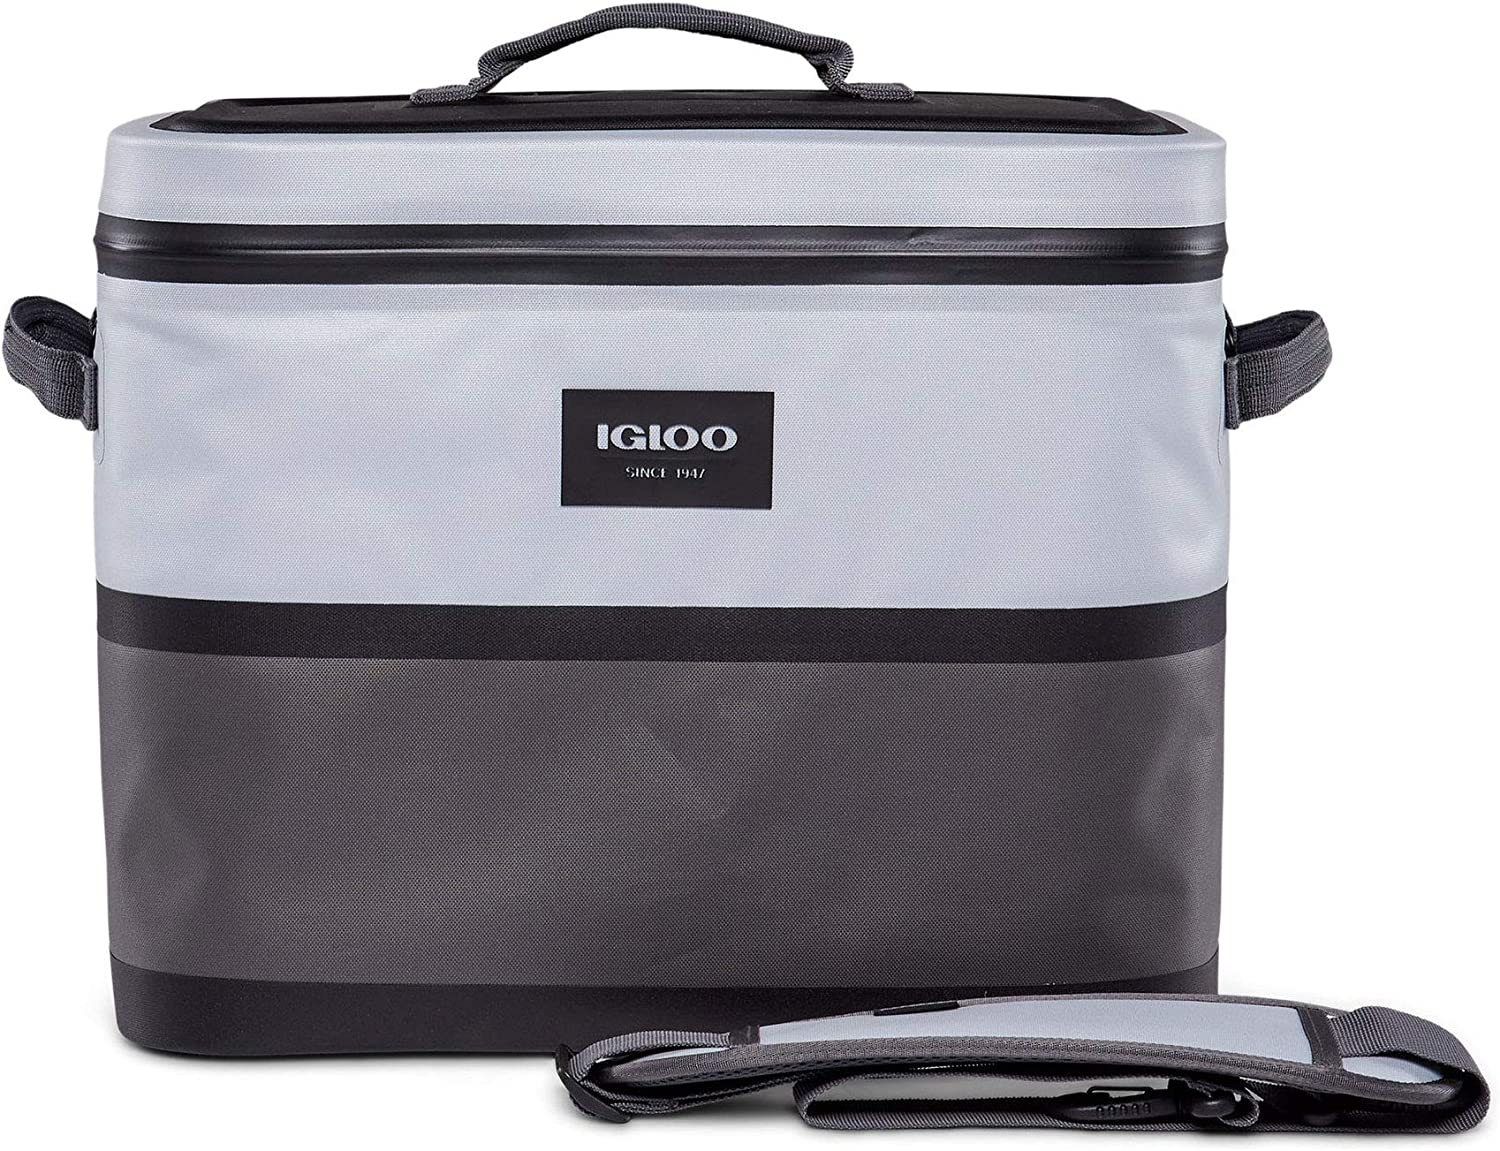 Igloo Repreve 14 Can Portable Recycled Lunch Pail Cooler